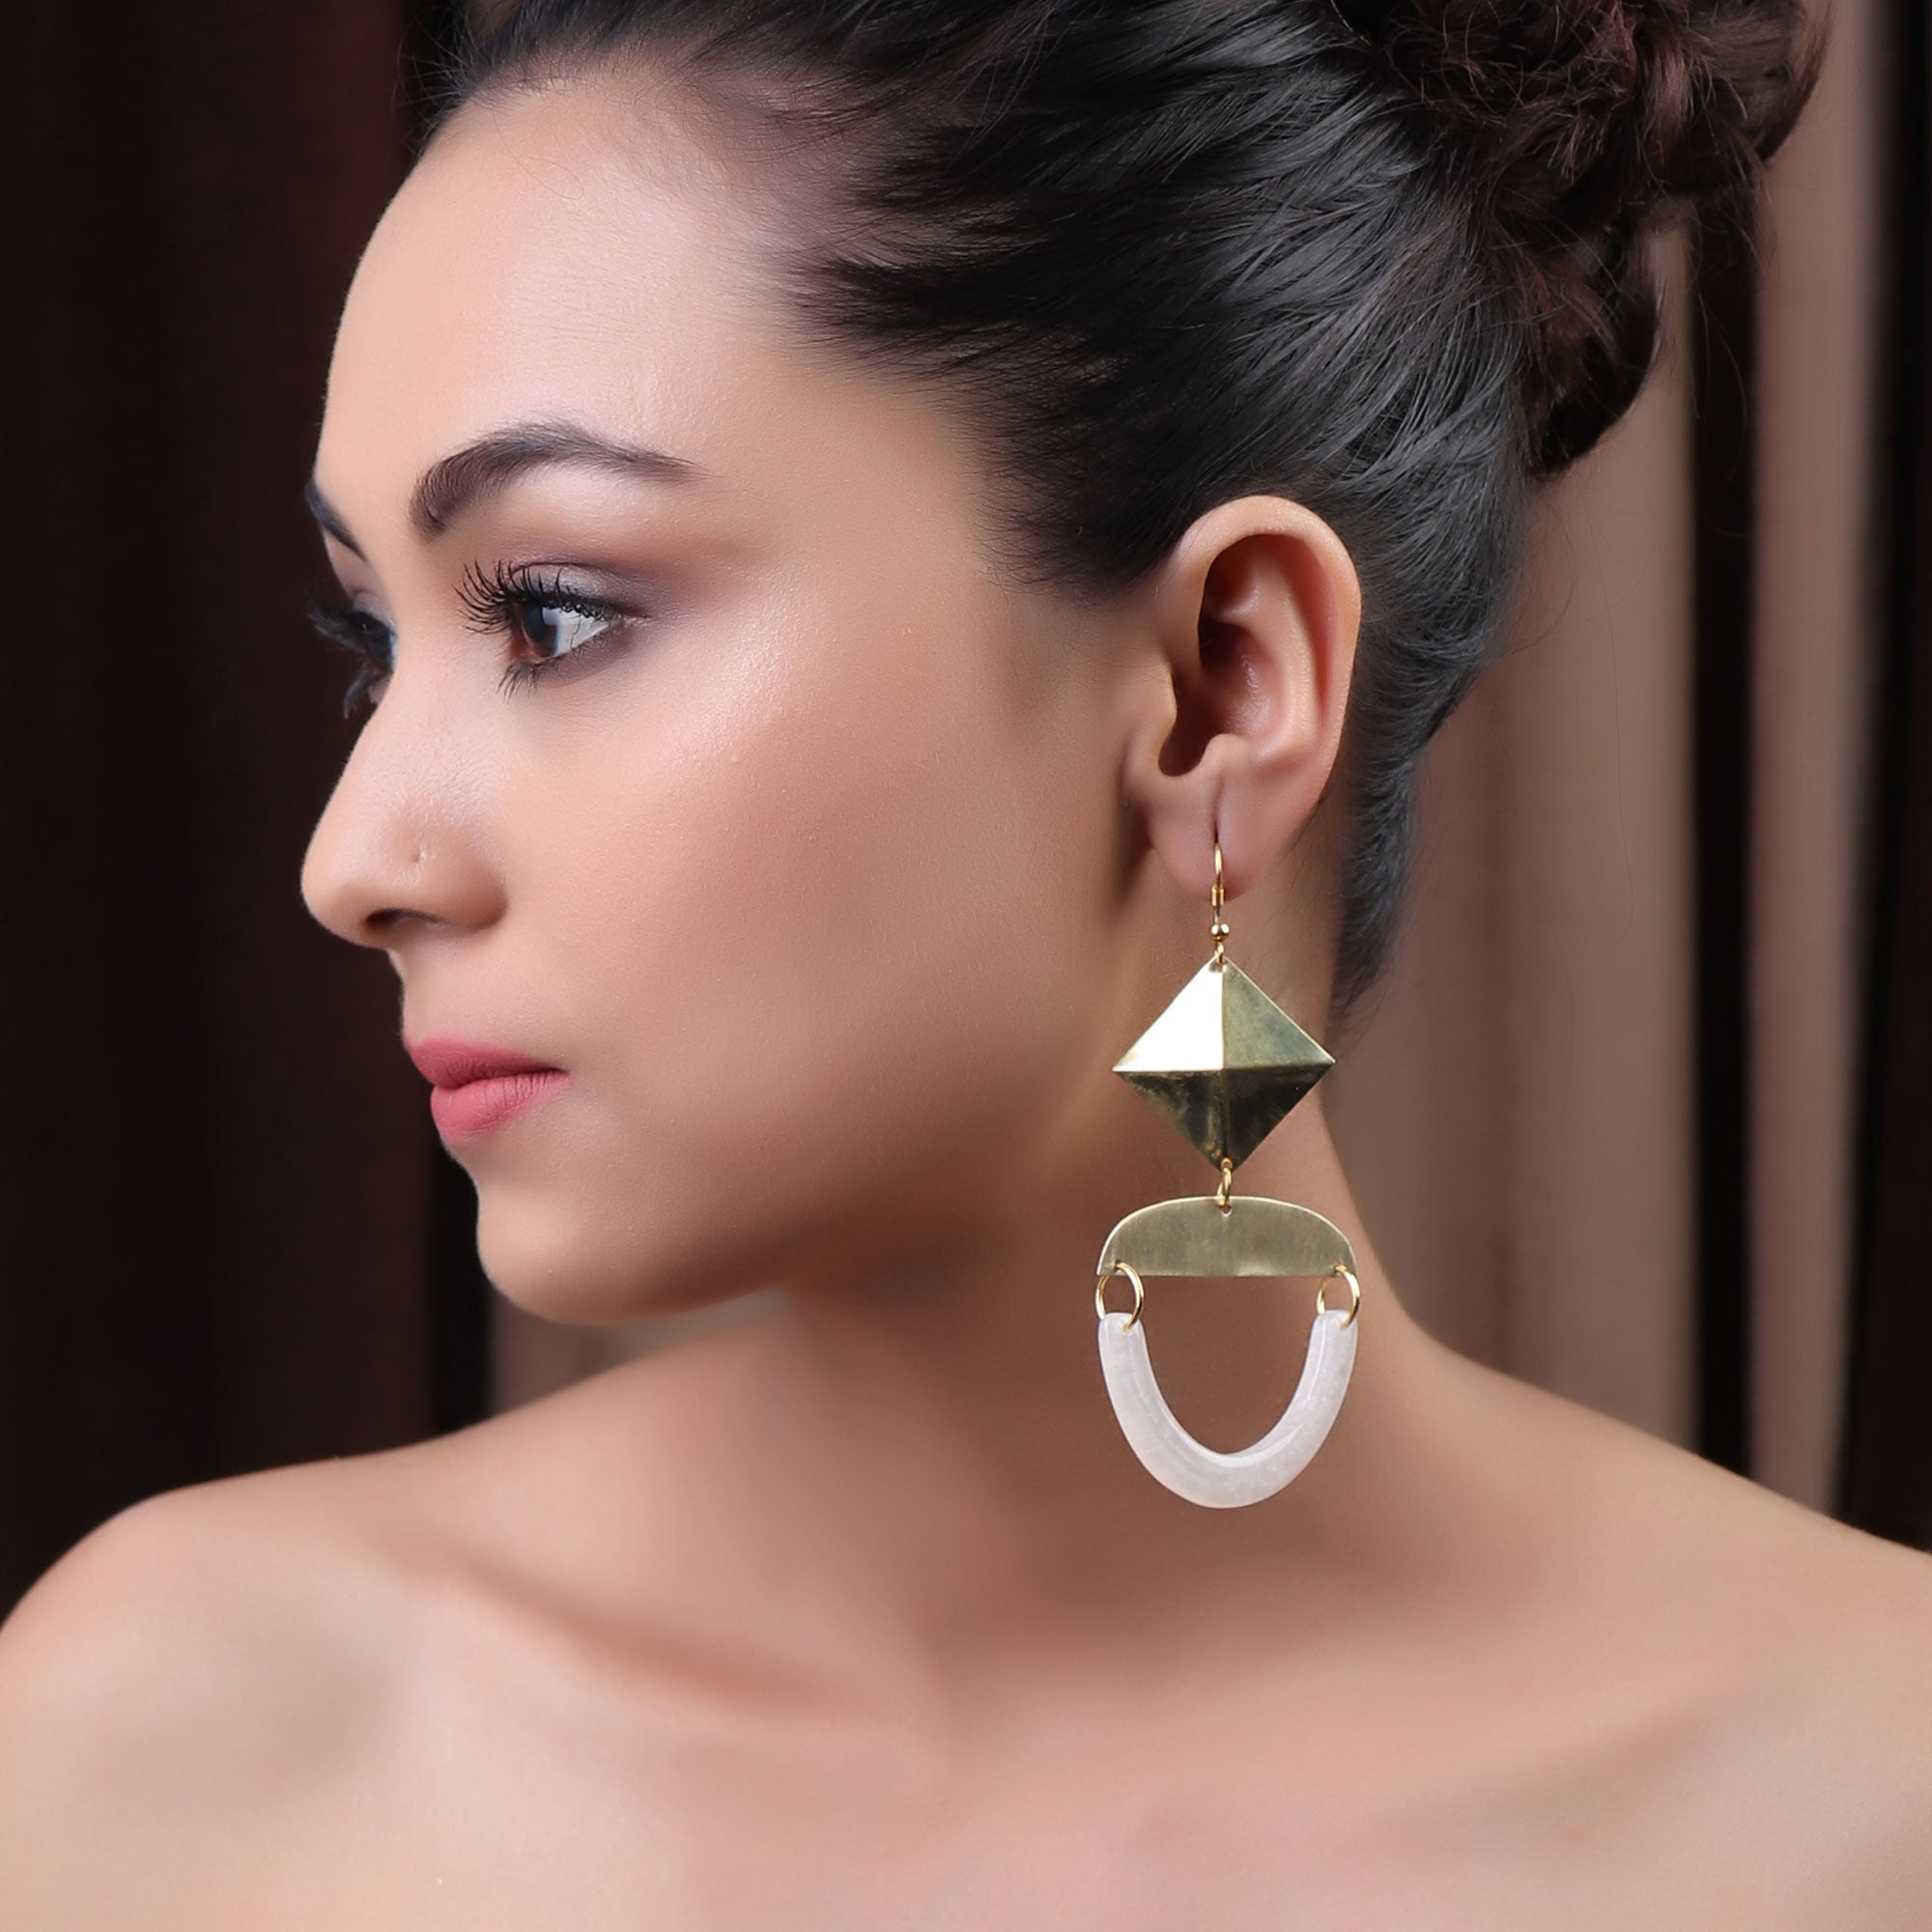 Earrings,The Sling Earring in White - Cippele Multi Store